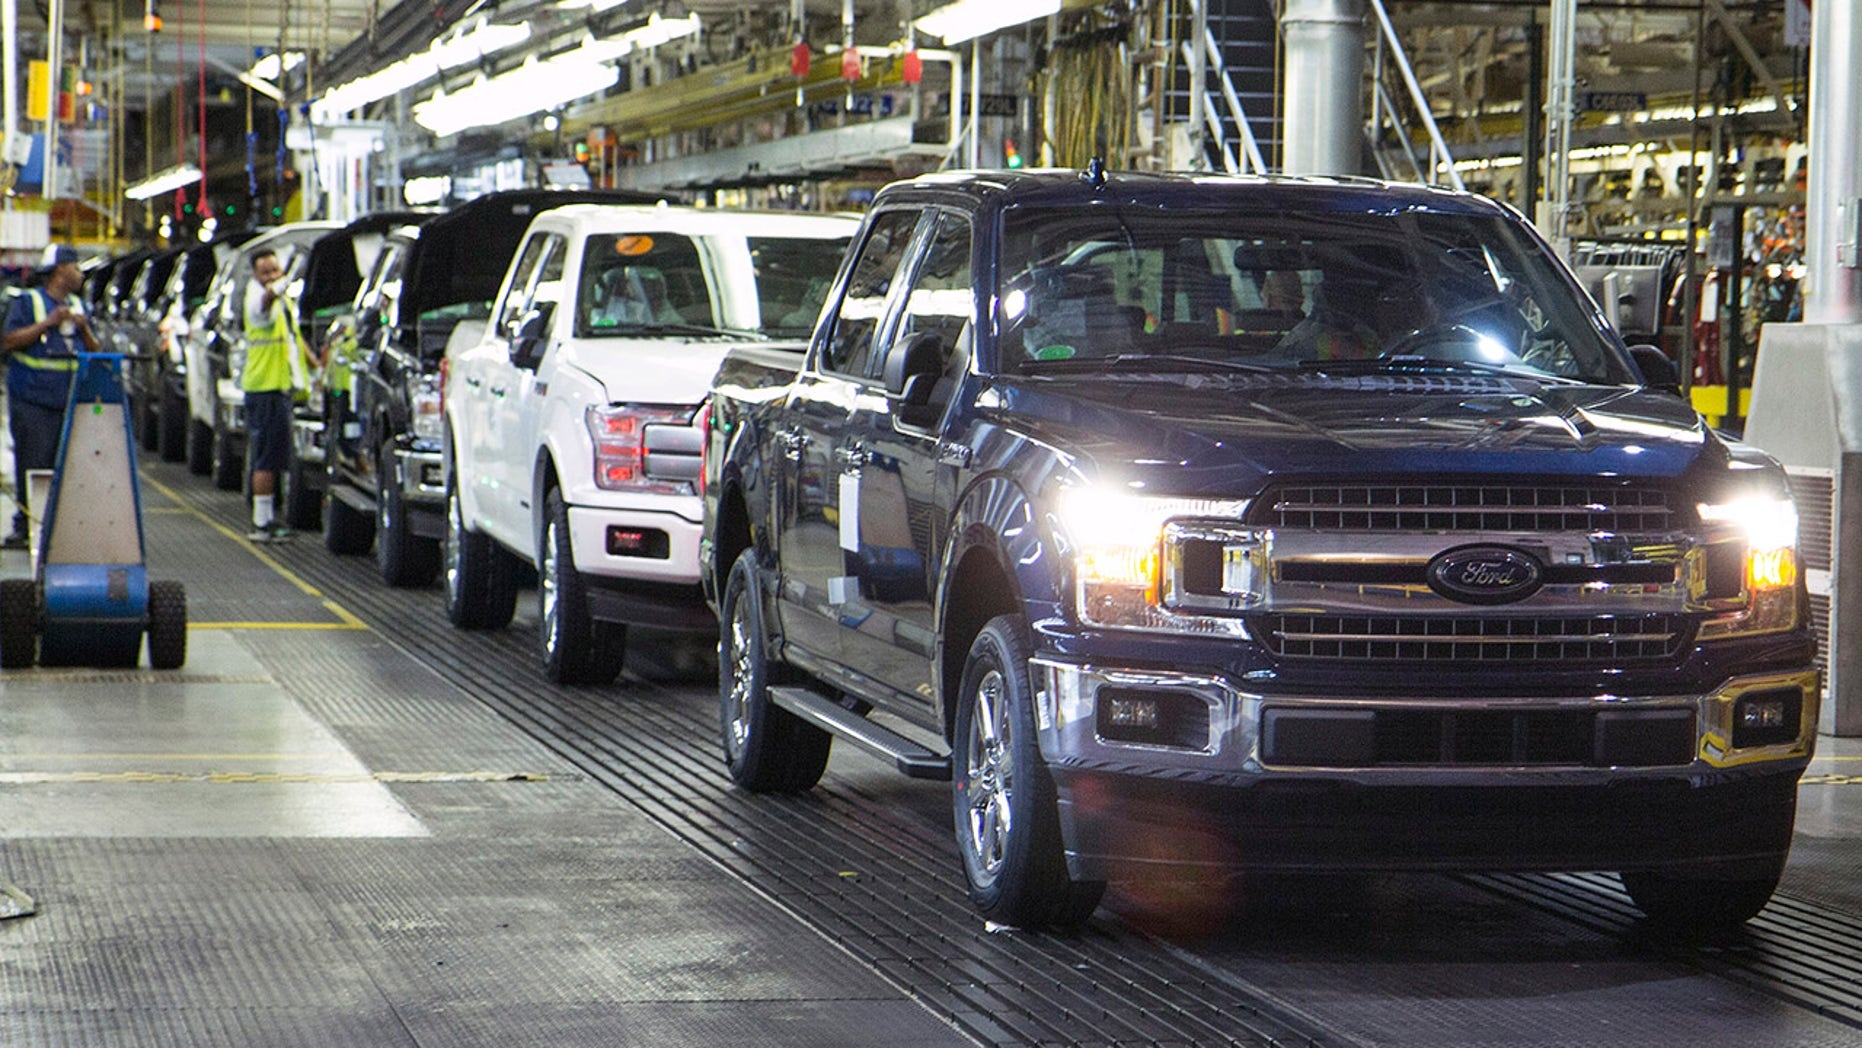 The first Ford F-150 truck rolls off the line this morning at Dearborn Truck Plant. The assembly line restarted after just over a week of downtime following a supplier fire. F-150 production is targeted to restart at Kansas City Assembly Plant on Monday as well. The Ford team also has successfully repaired the Super Duty supply chain, with production slated to begin at Kentucky Truck Plant by Monday as well.